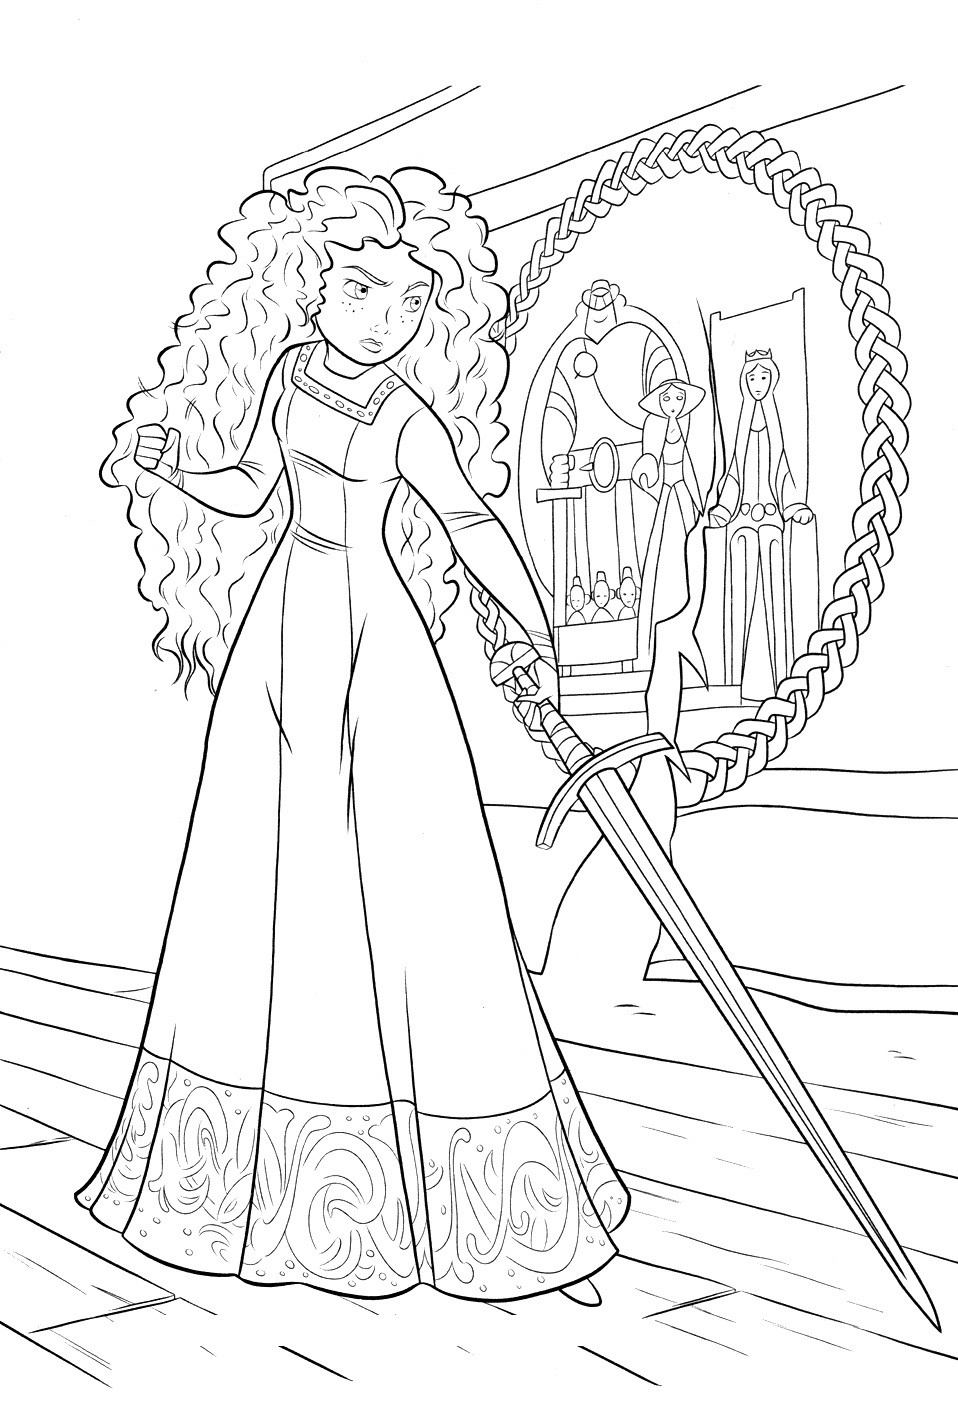 958x1404 Brave Coloring Pages Princess Merida For Kids Disney Inside Page